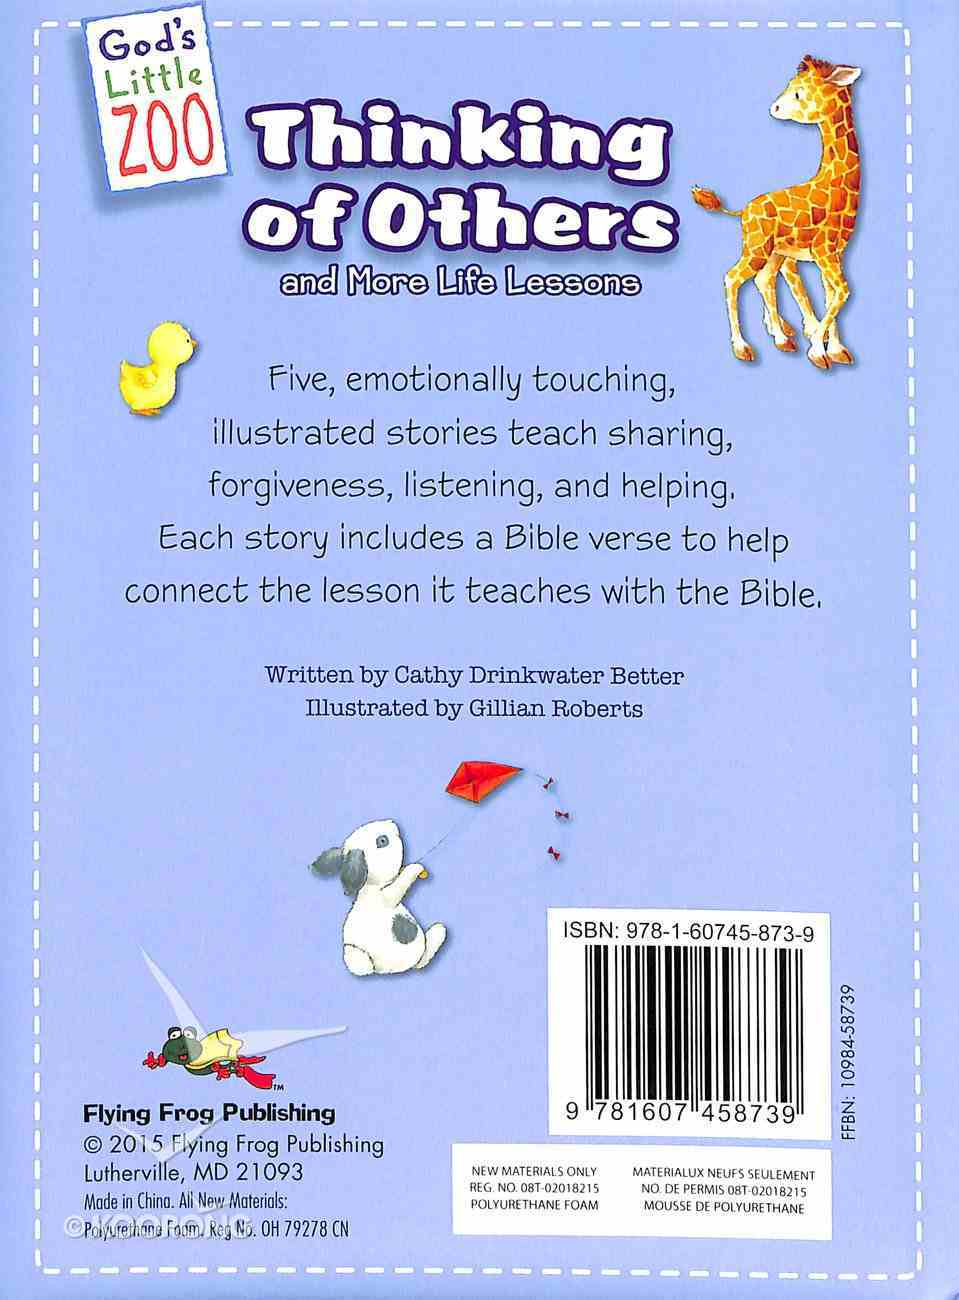 God's Little Zoo: Thinking of Others Board Book